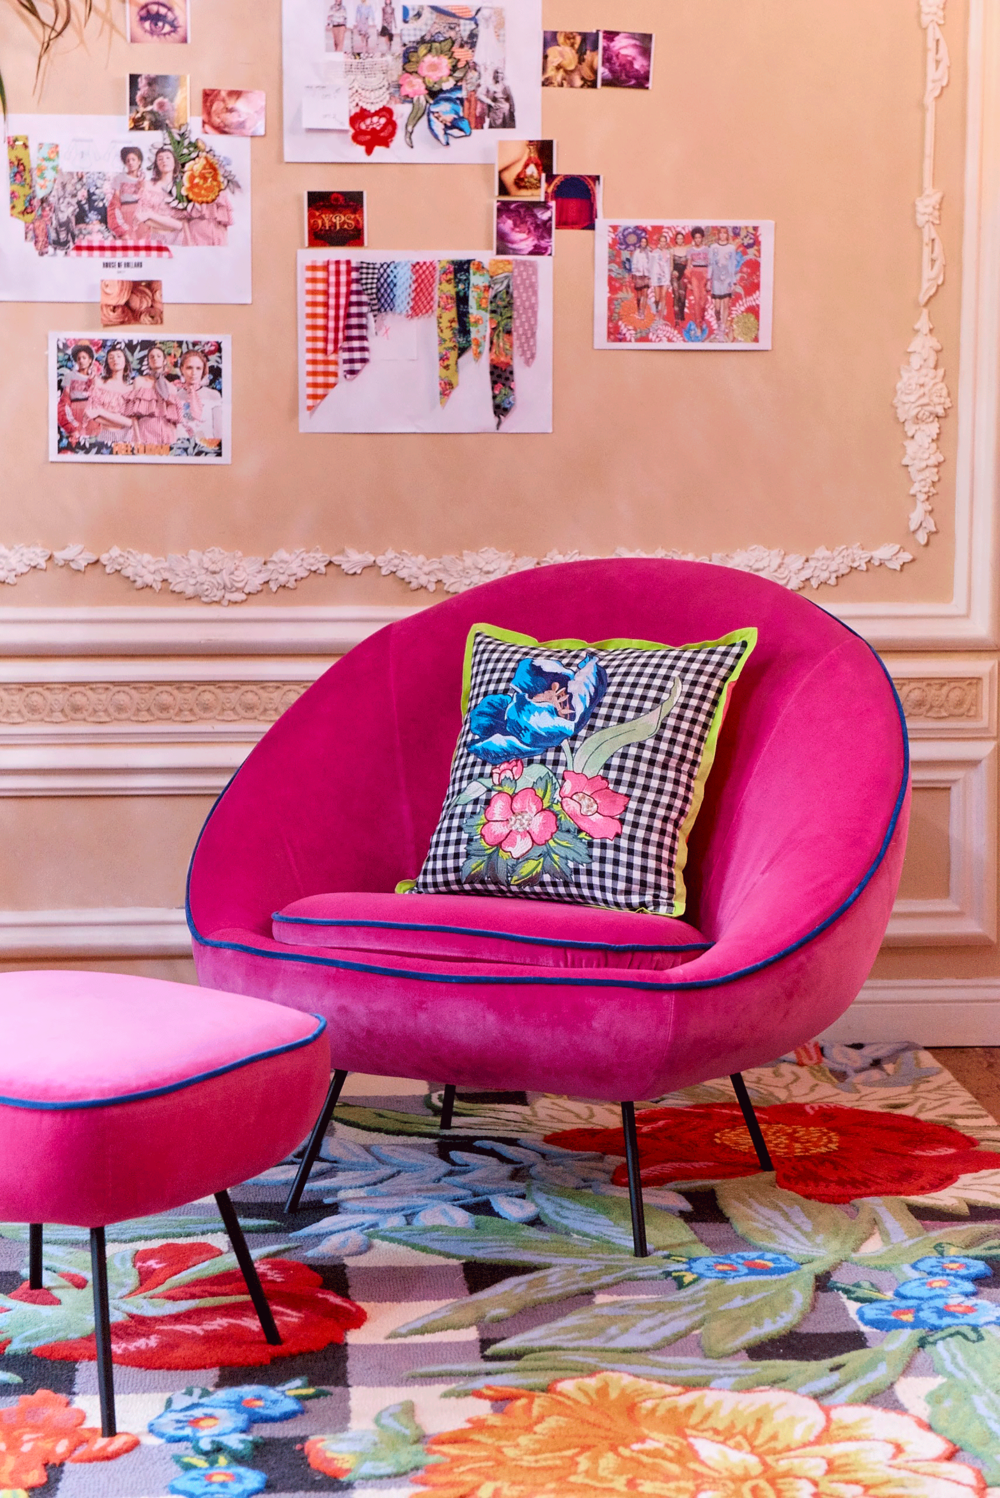 Henry Has Waved His Happy Wand Over Habitatu0027s Misty Armchair And It Is Now  Available In Limited Edition Hot Pink Velvet With Contrast Navy Blue Piping.